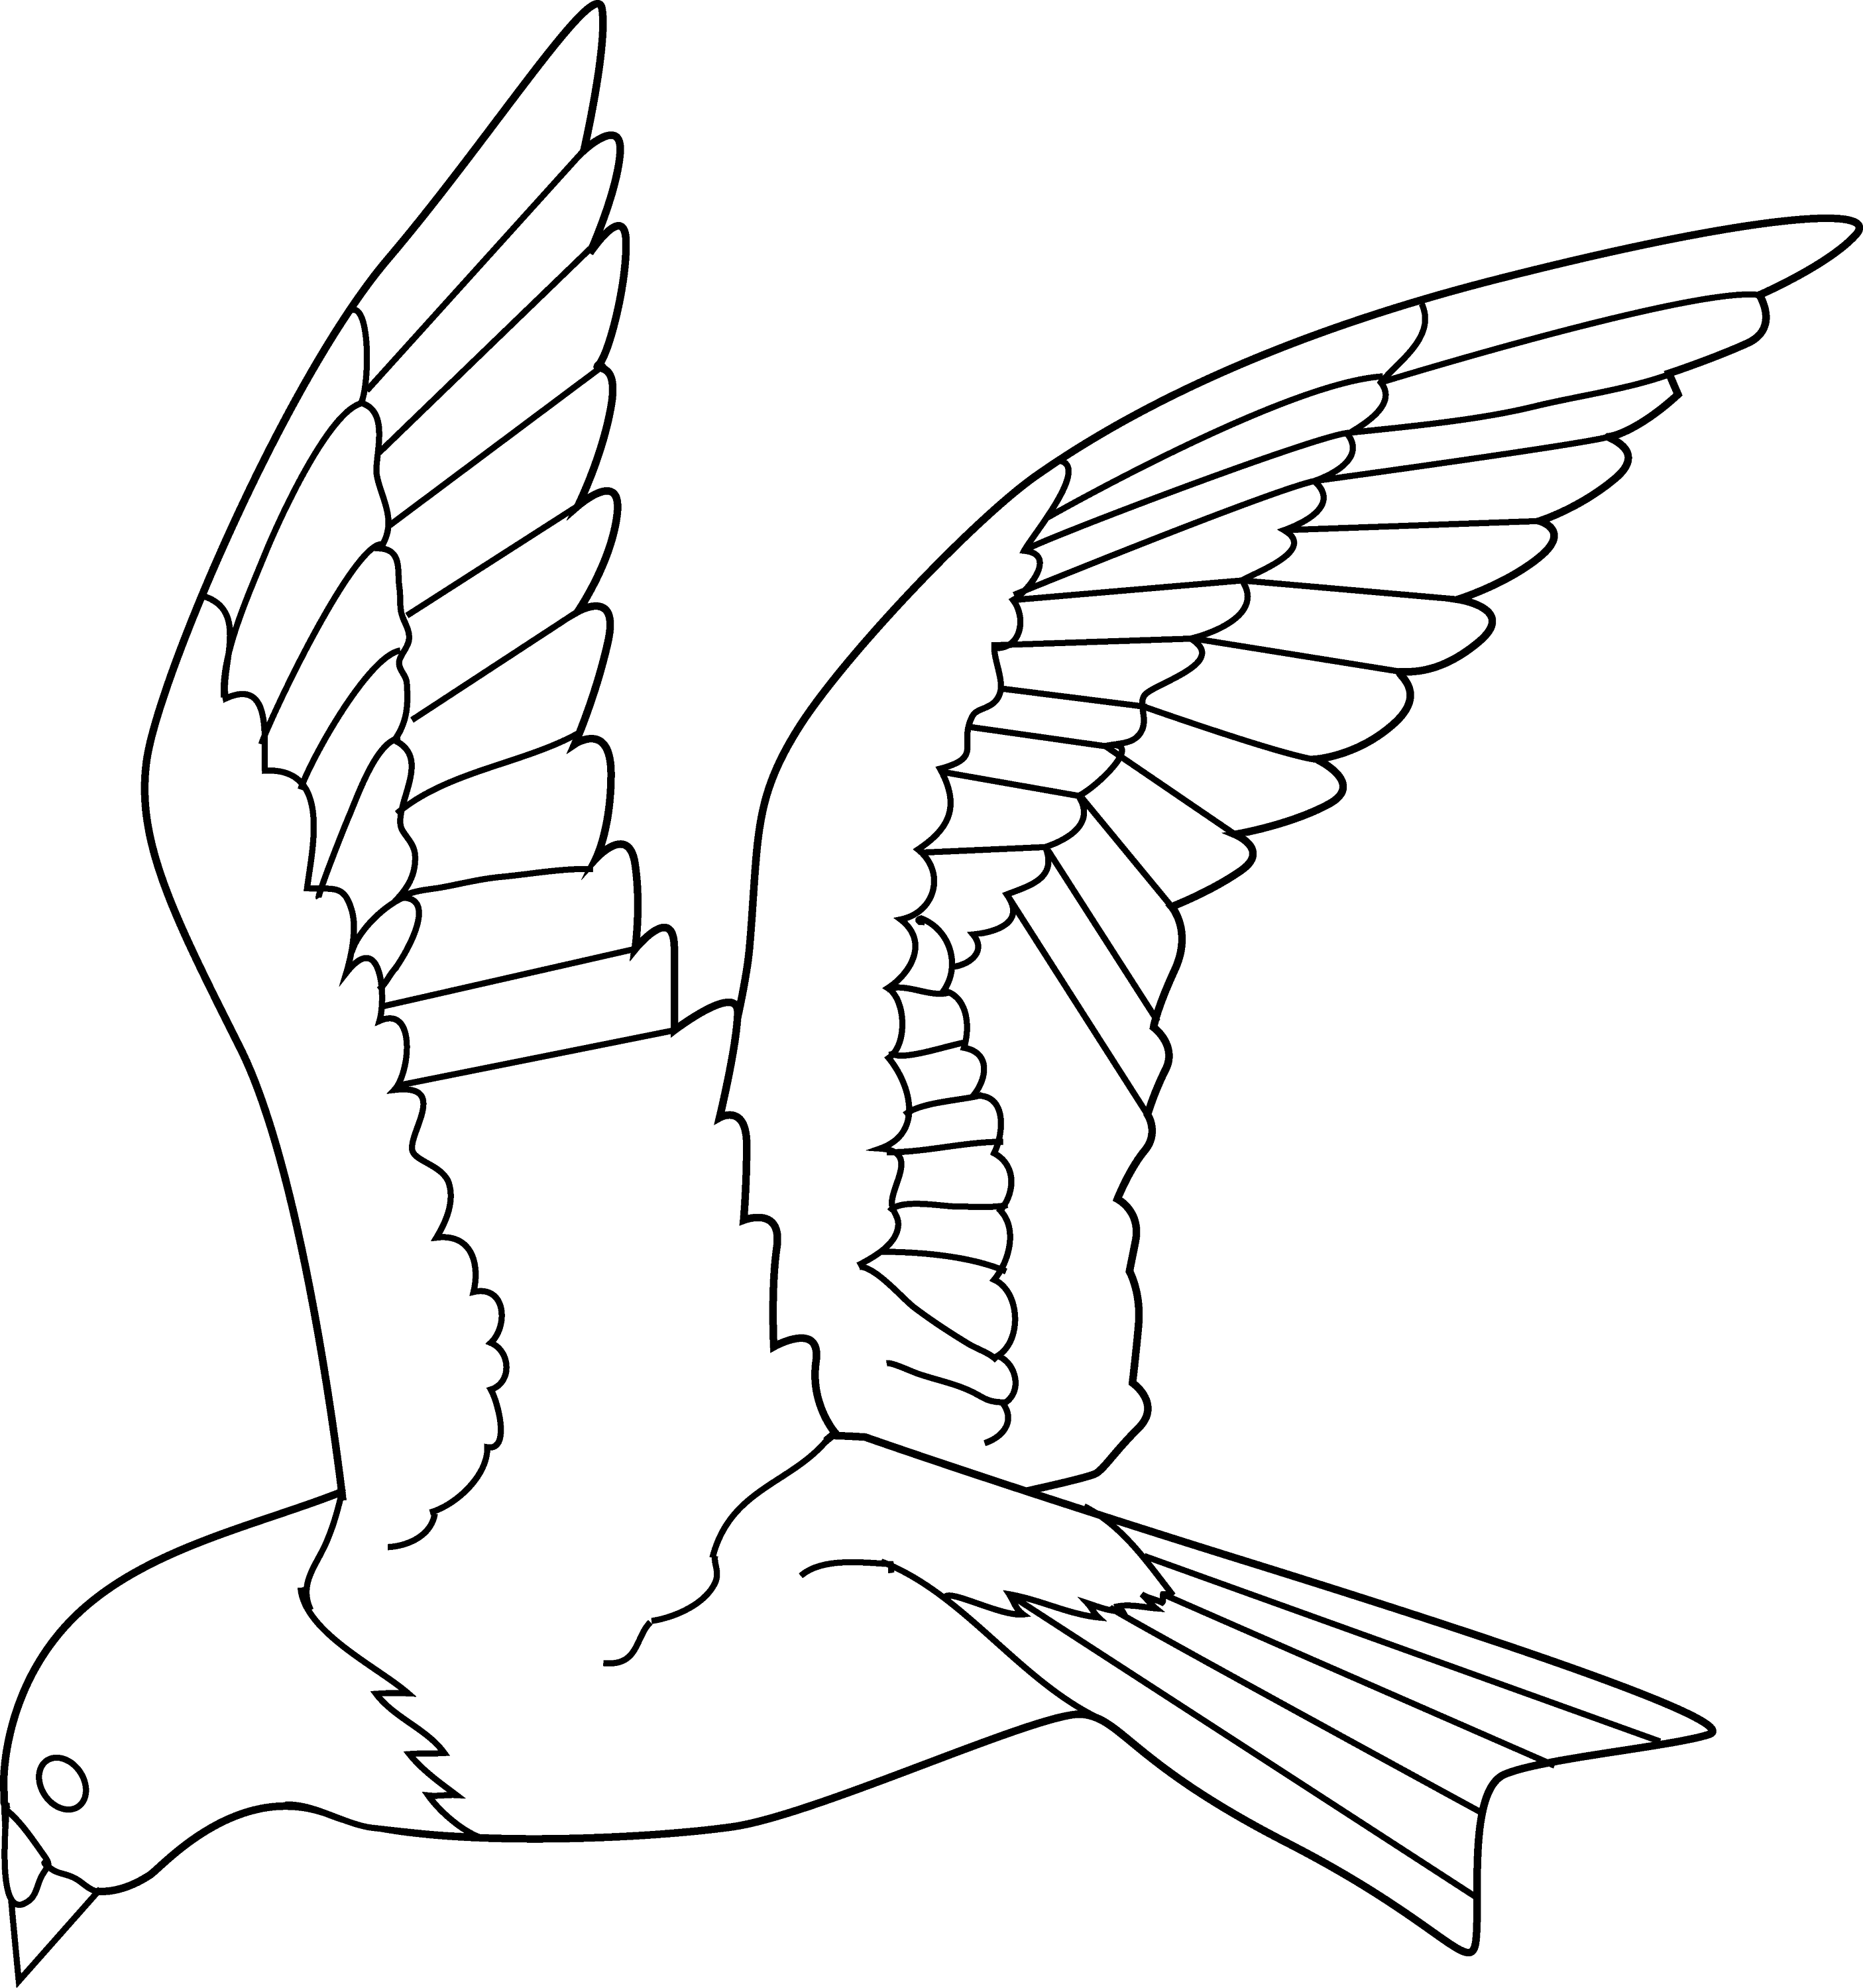 coloring bird png flying bird coloring page free clip art png bird coloring